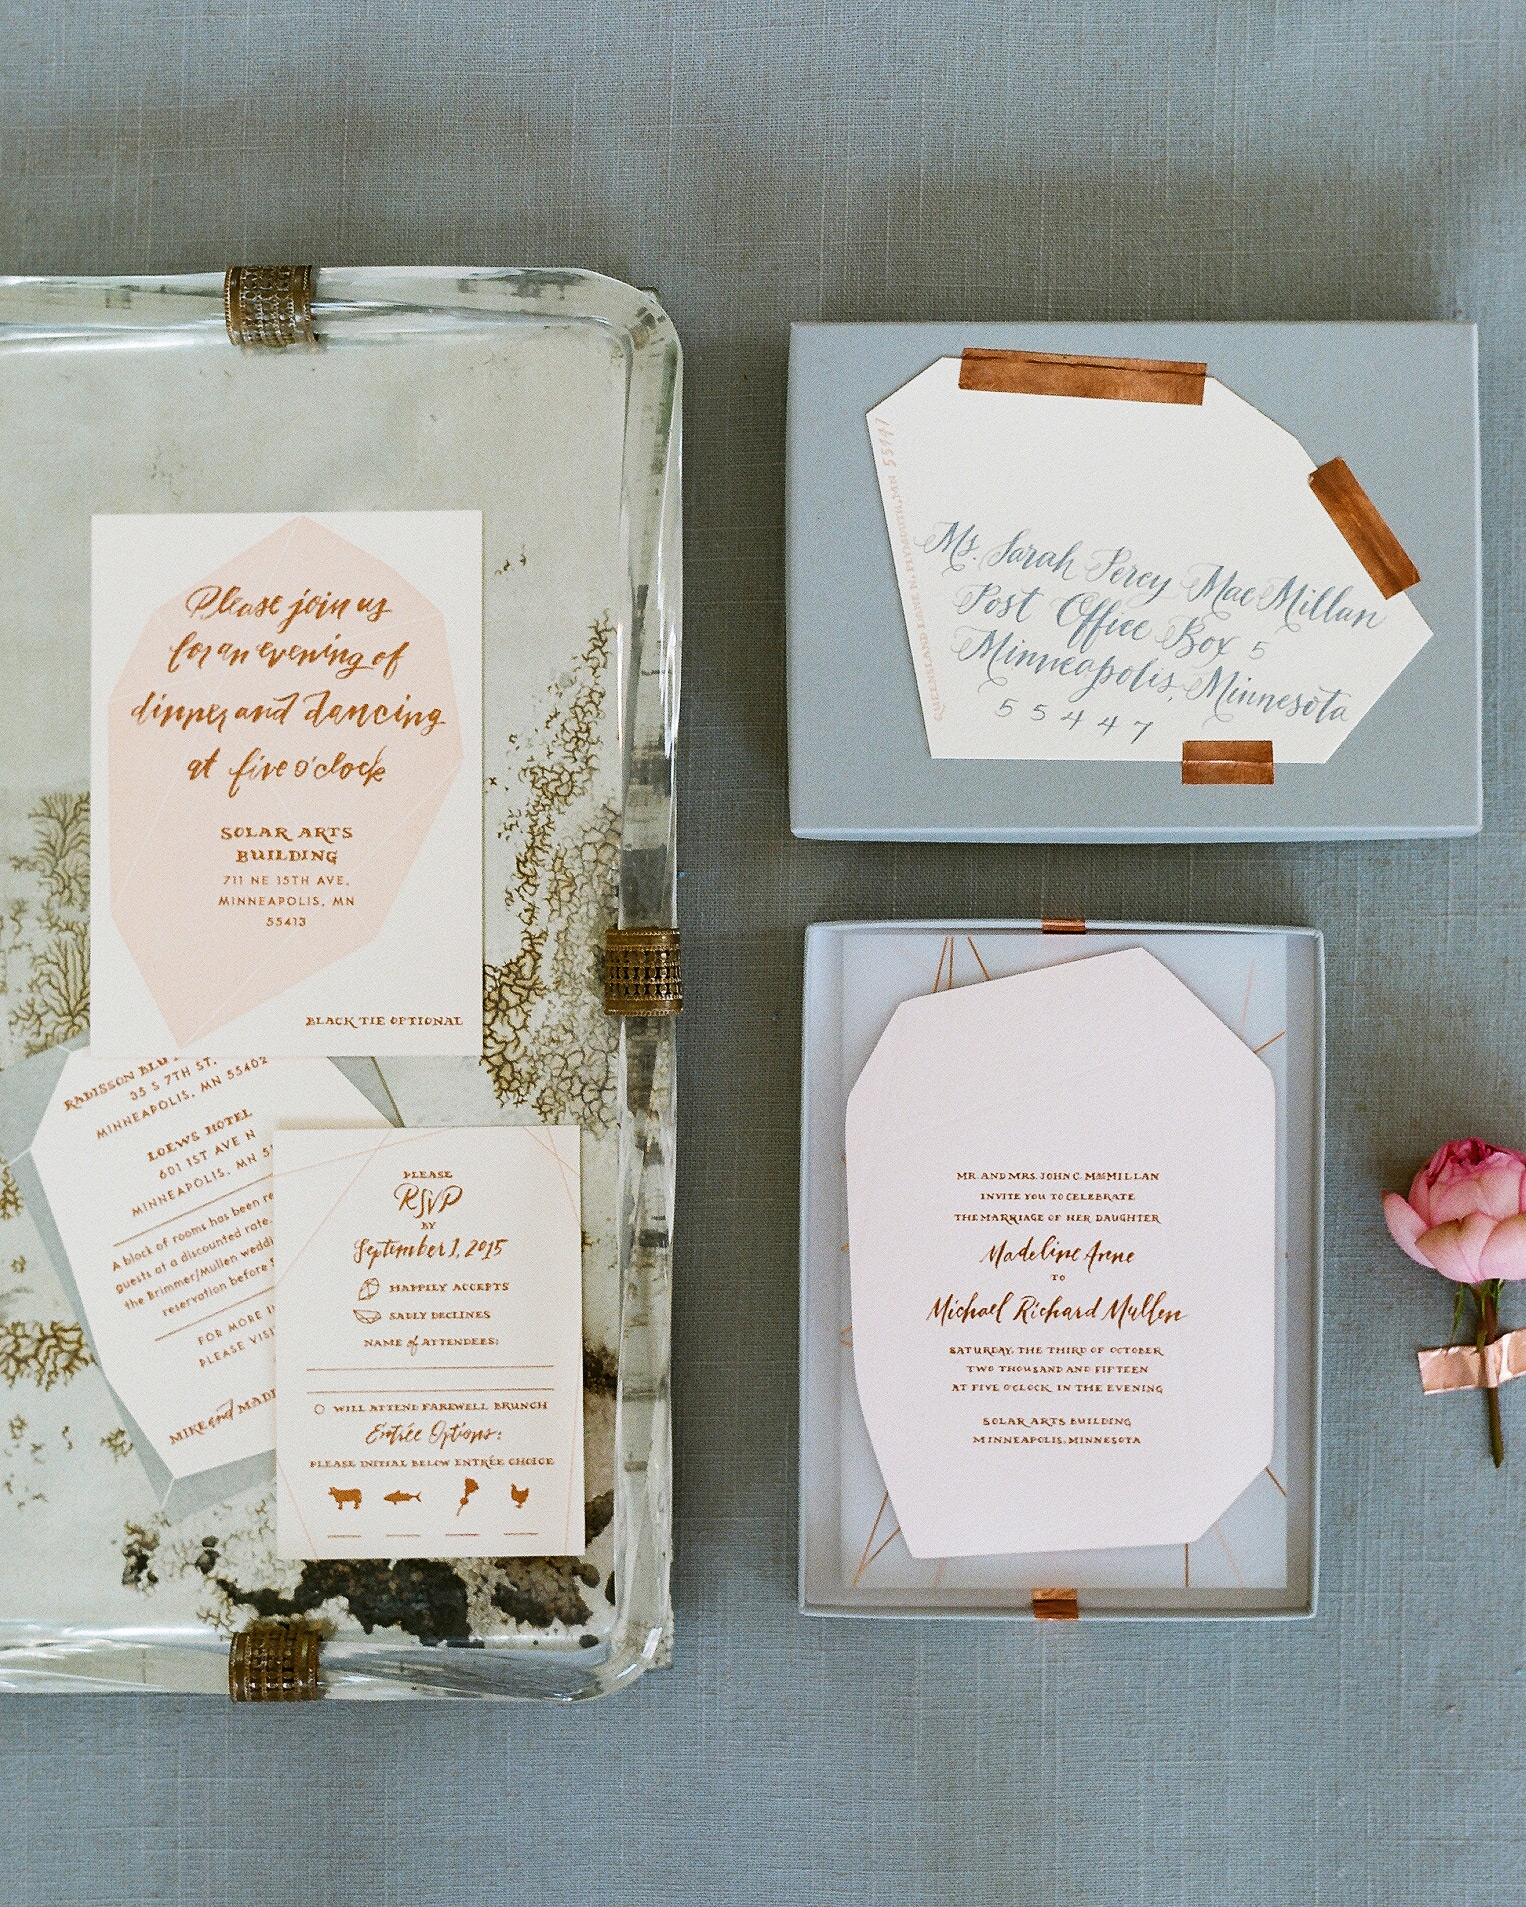 maddy-mike-wedding-invite-009.9784.15c.2015.49-6134174-0716.jpg